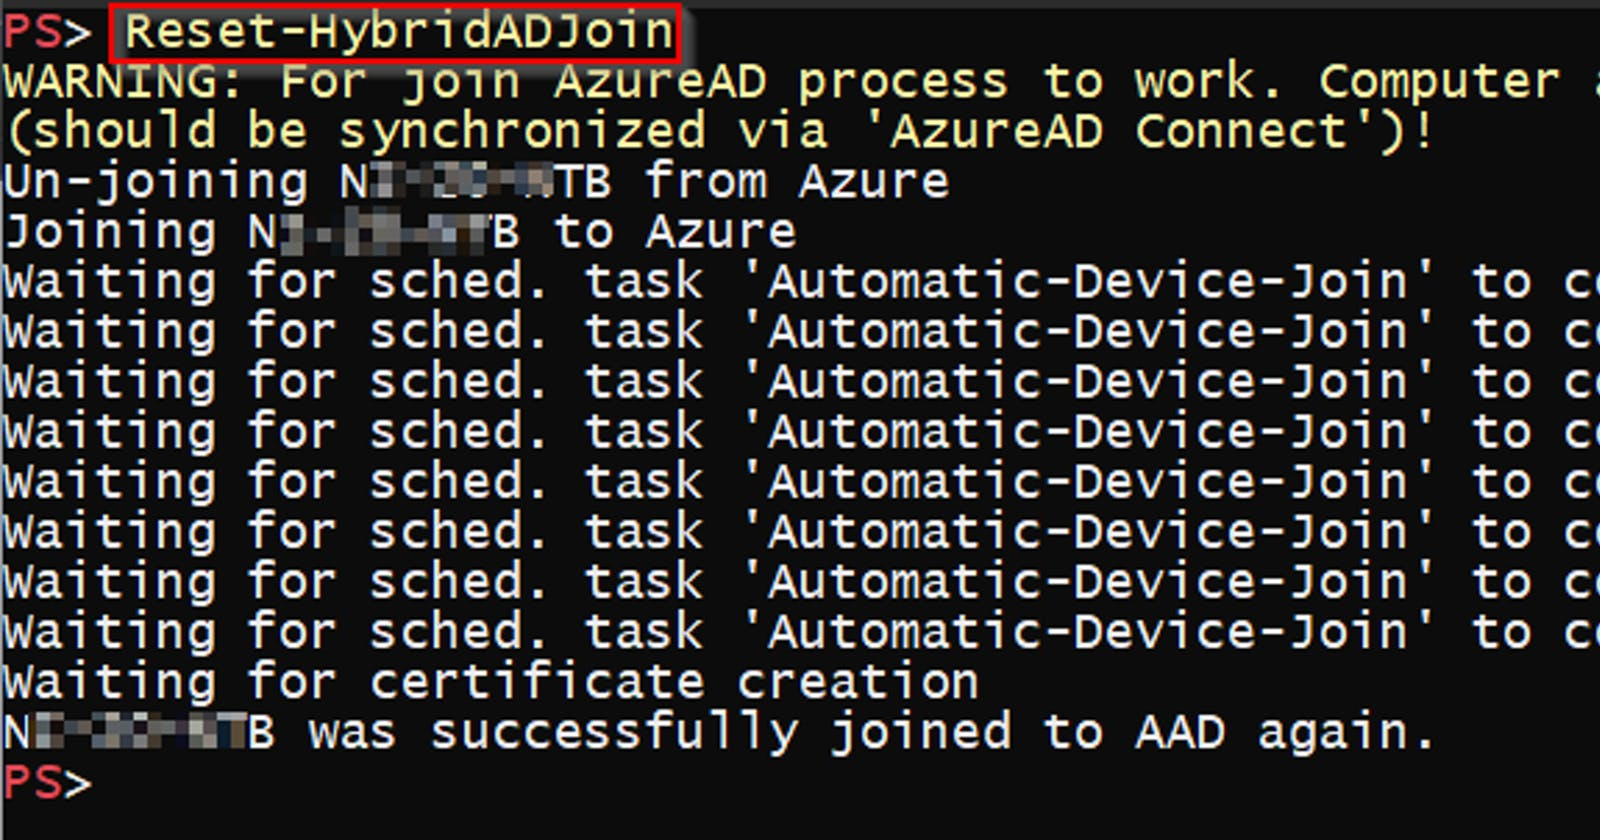 Fixing Hybrid Azure AD join on a device using PowerShell